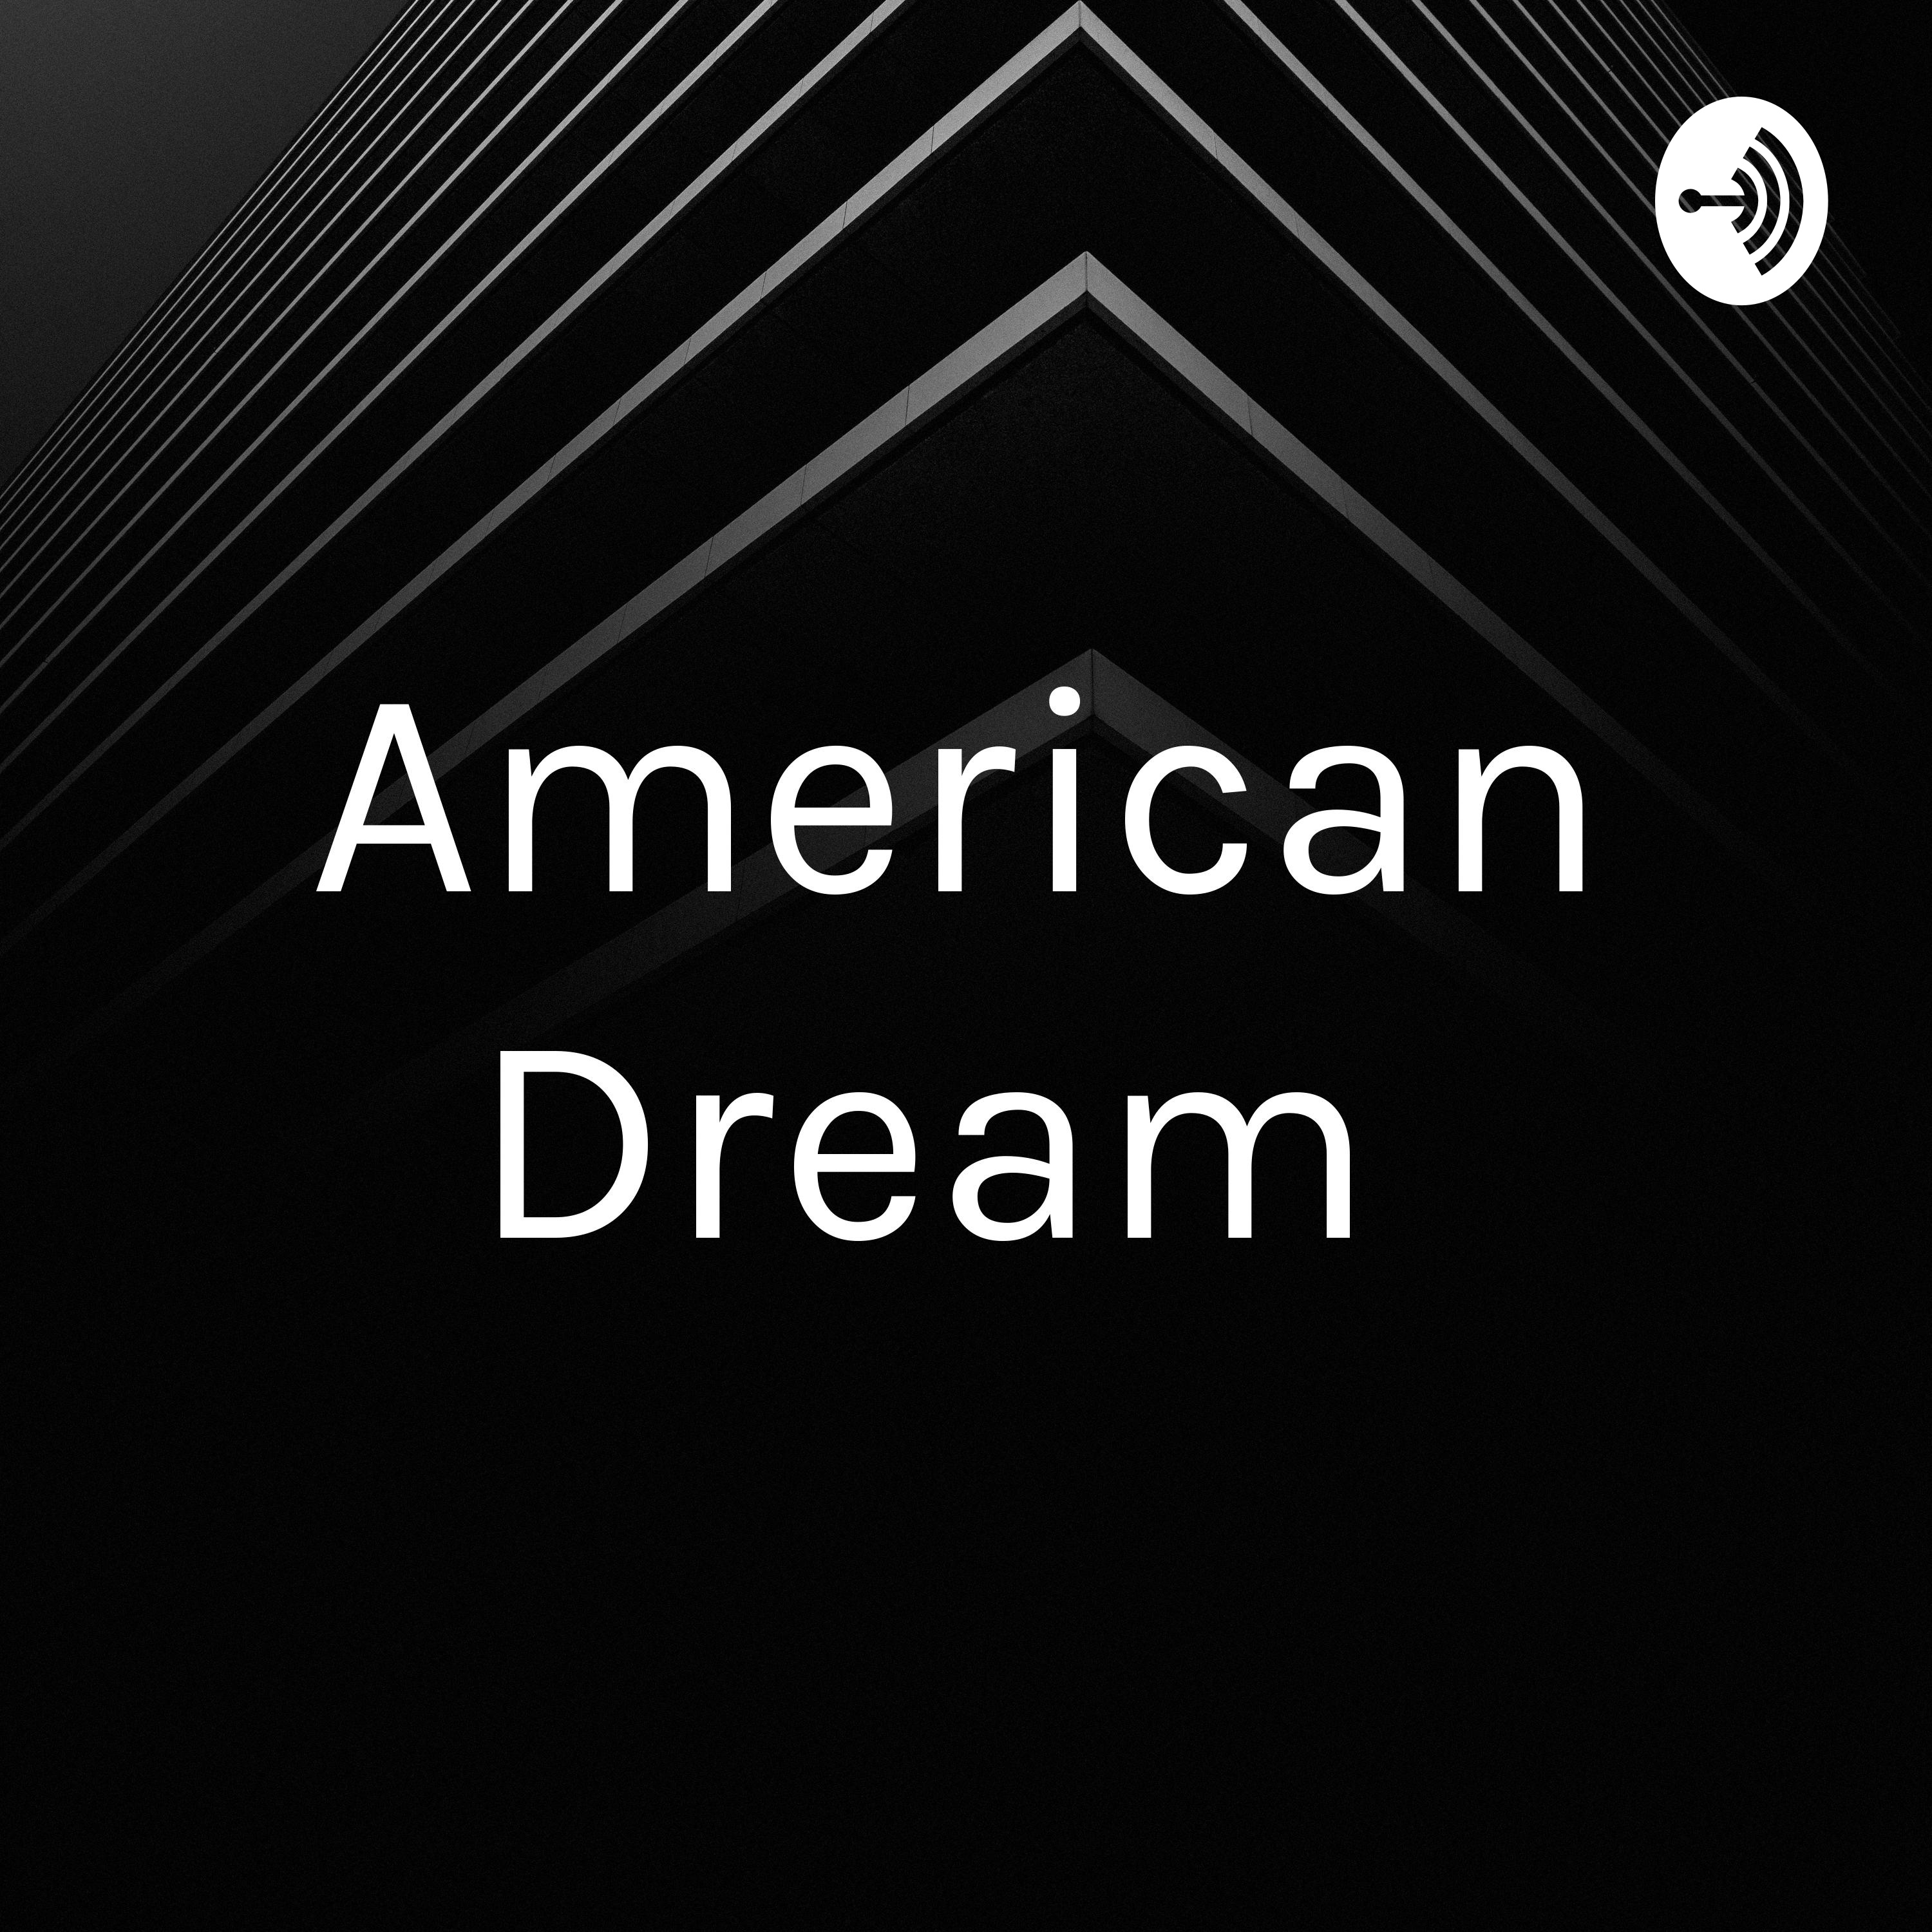 American Dream is it attainable